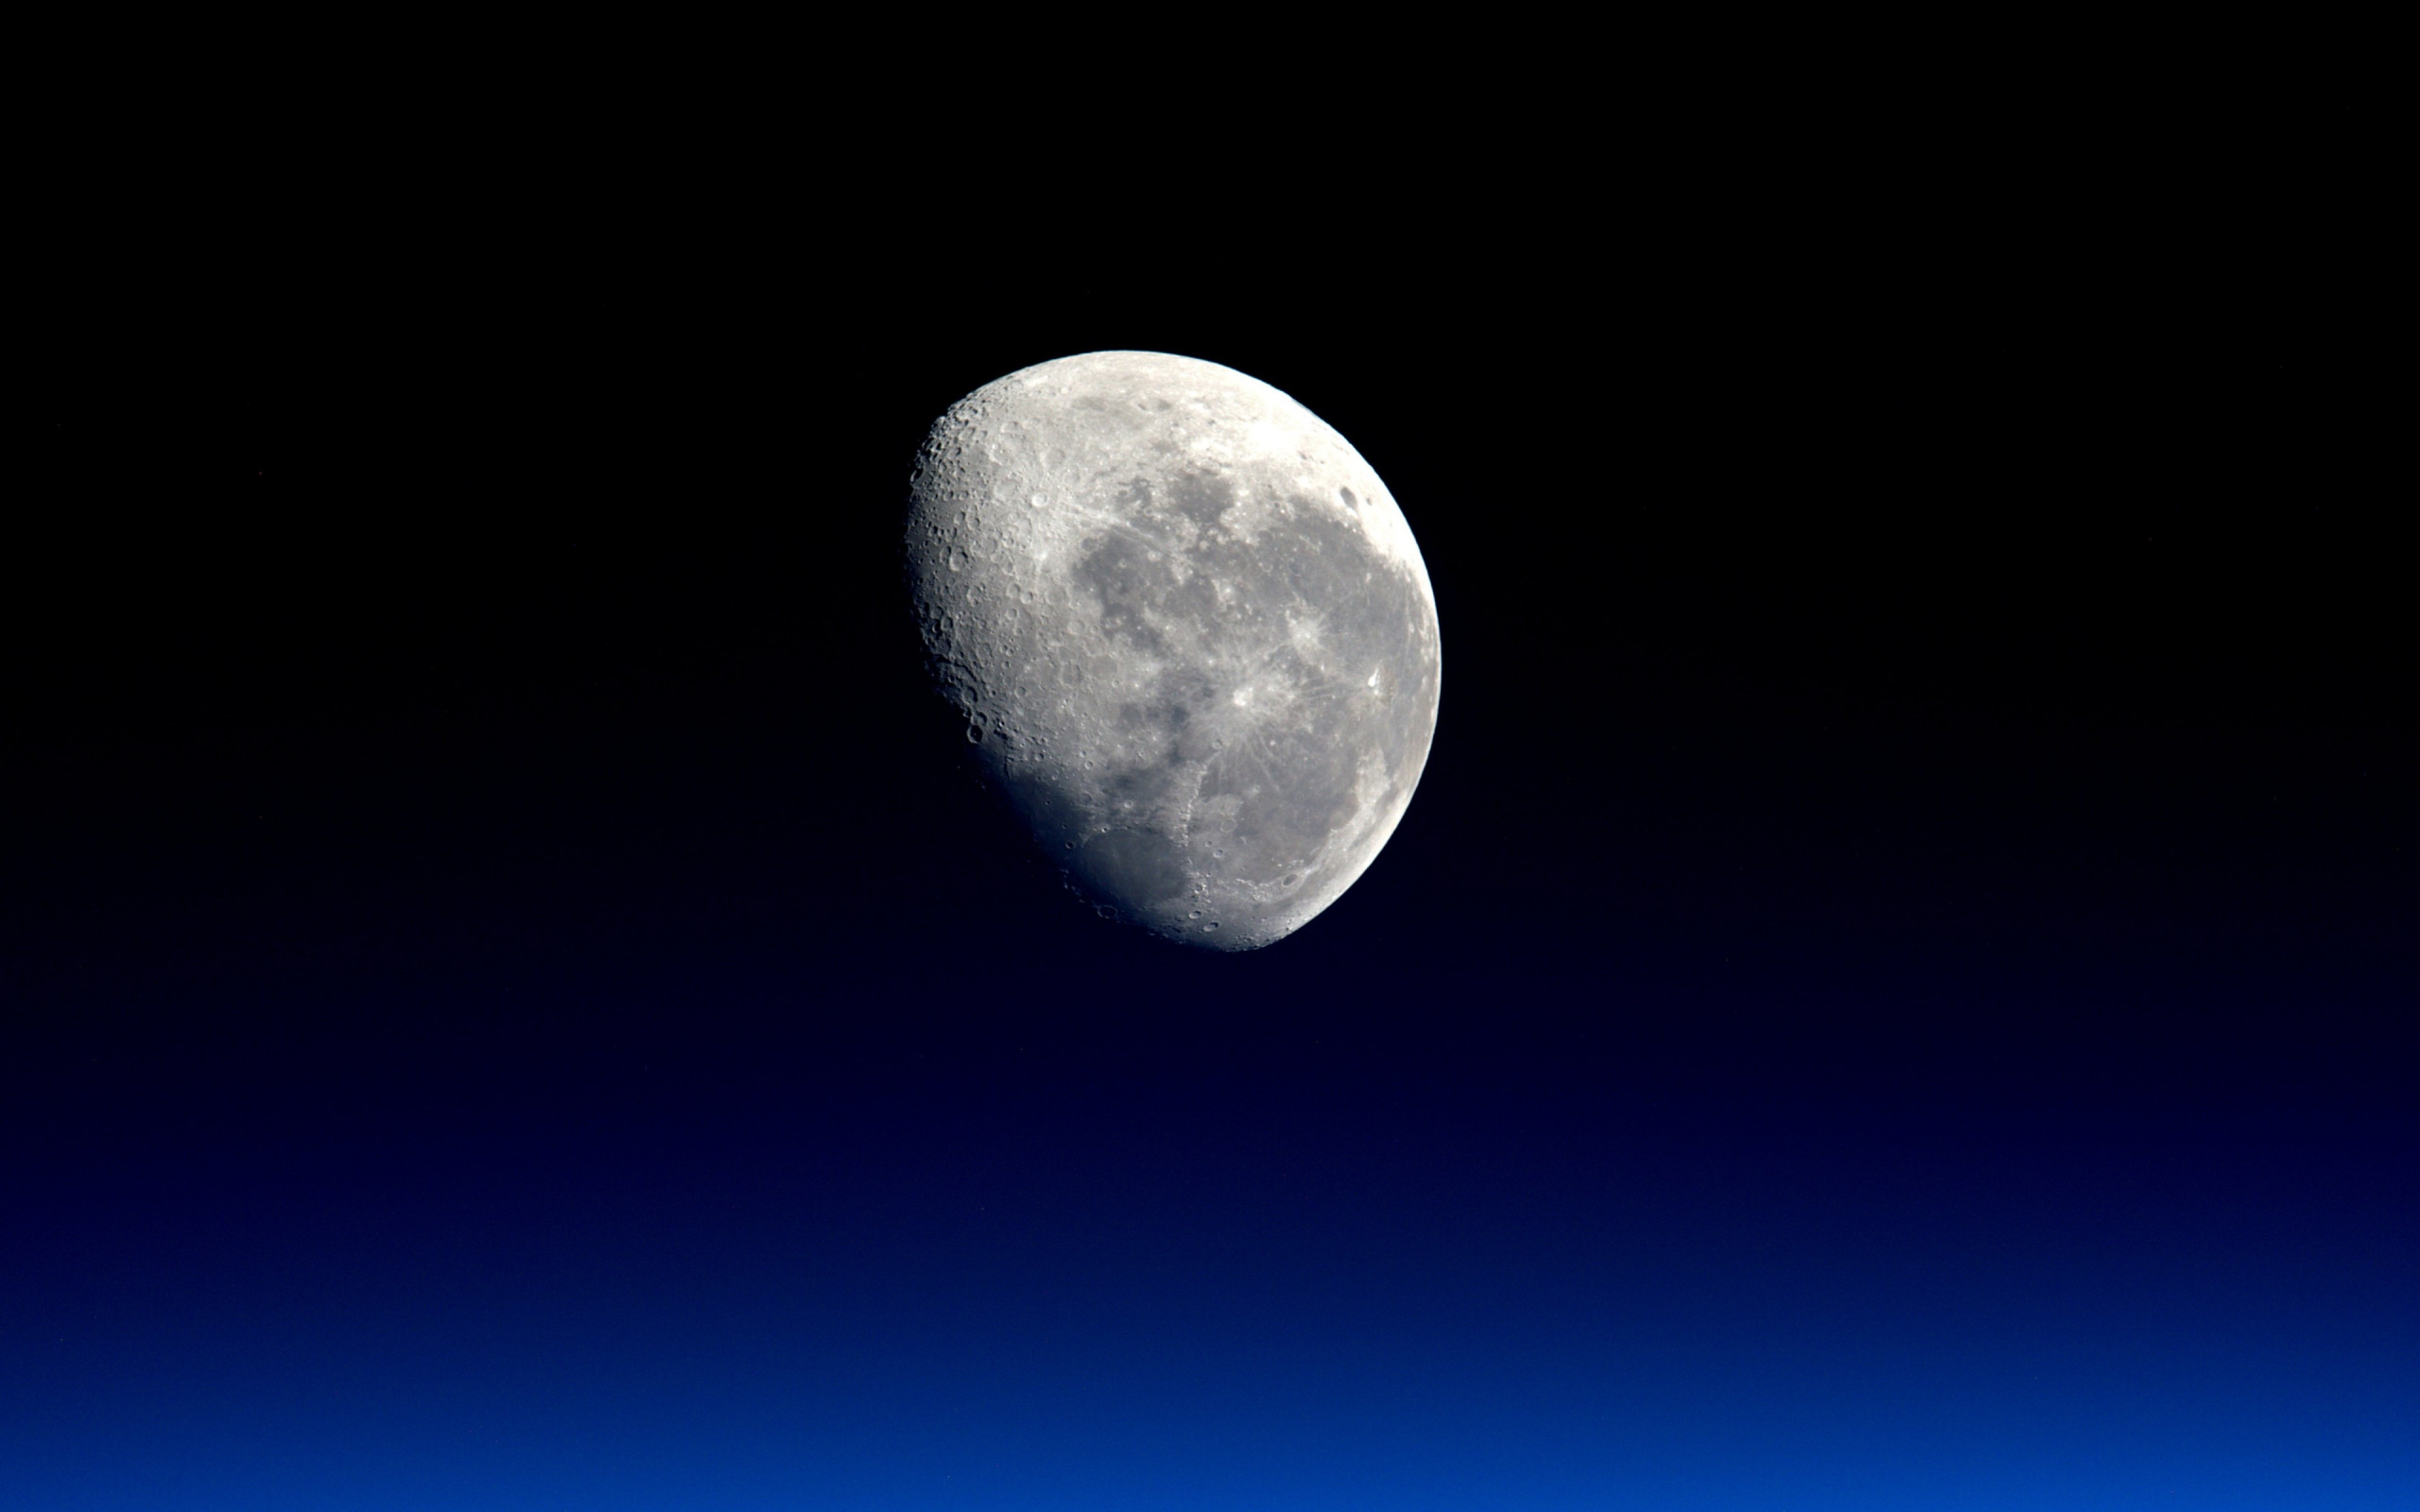 Our natural satellite: The Moon wallpaper 2560x1600